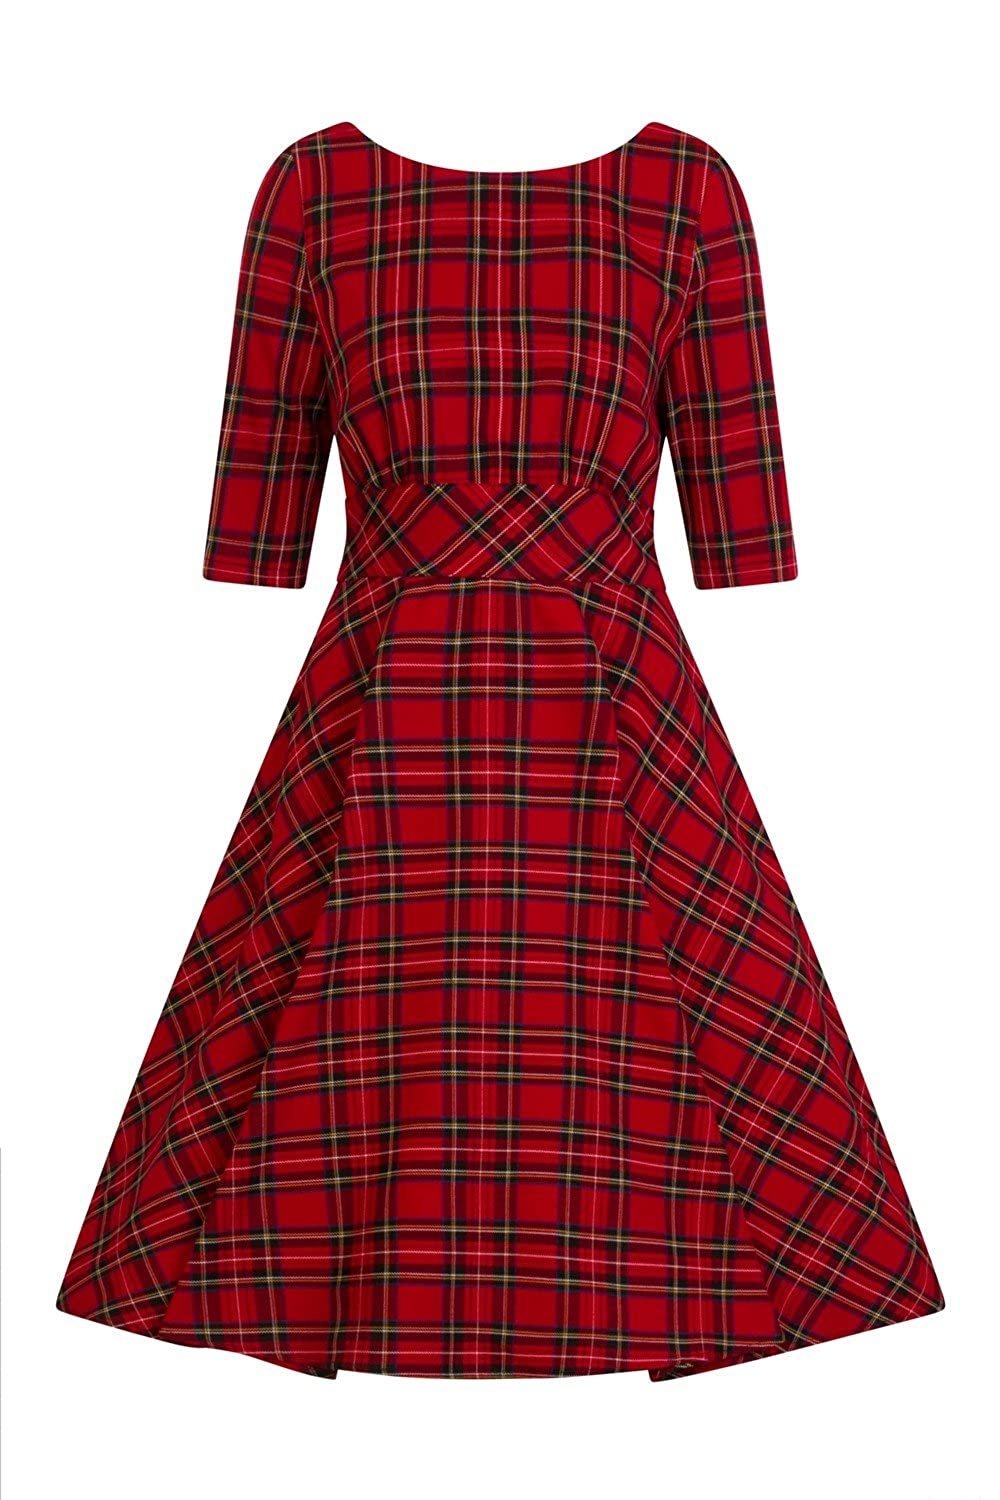 Vintage Tea Dresses, Floral Tea Dresses, Tea Length Dresses Hell Bunny Irvine Tartan 1950s Vintage Retro Dress XS-4XL $72.99 AT vintagedancer.com